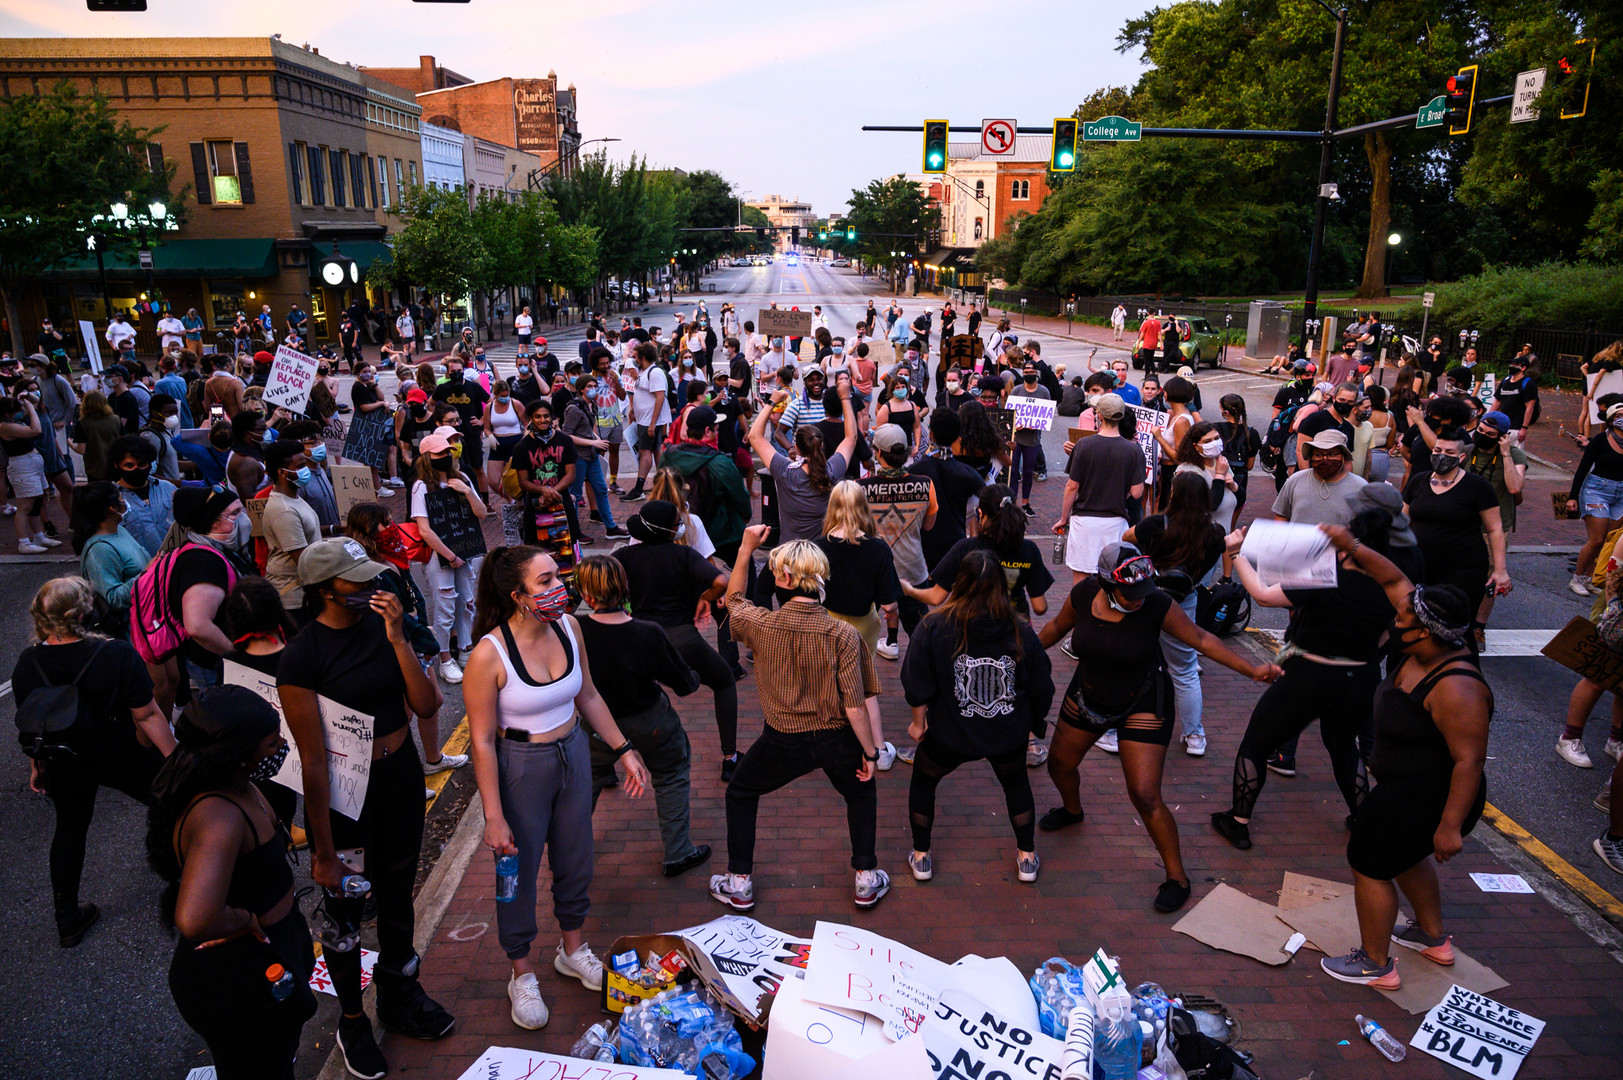 A huge dance party breaks out among protesters in the intersection of Broad Street and College Avenue on Saturday, June 7, 2020 in Athens, Georgia. Several hundred protesters chose to stay downtown after the official rally ended, and the evening ended with dancing and games in the street as activists asked protesters to return home before midnight.